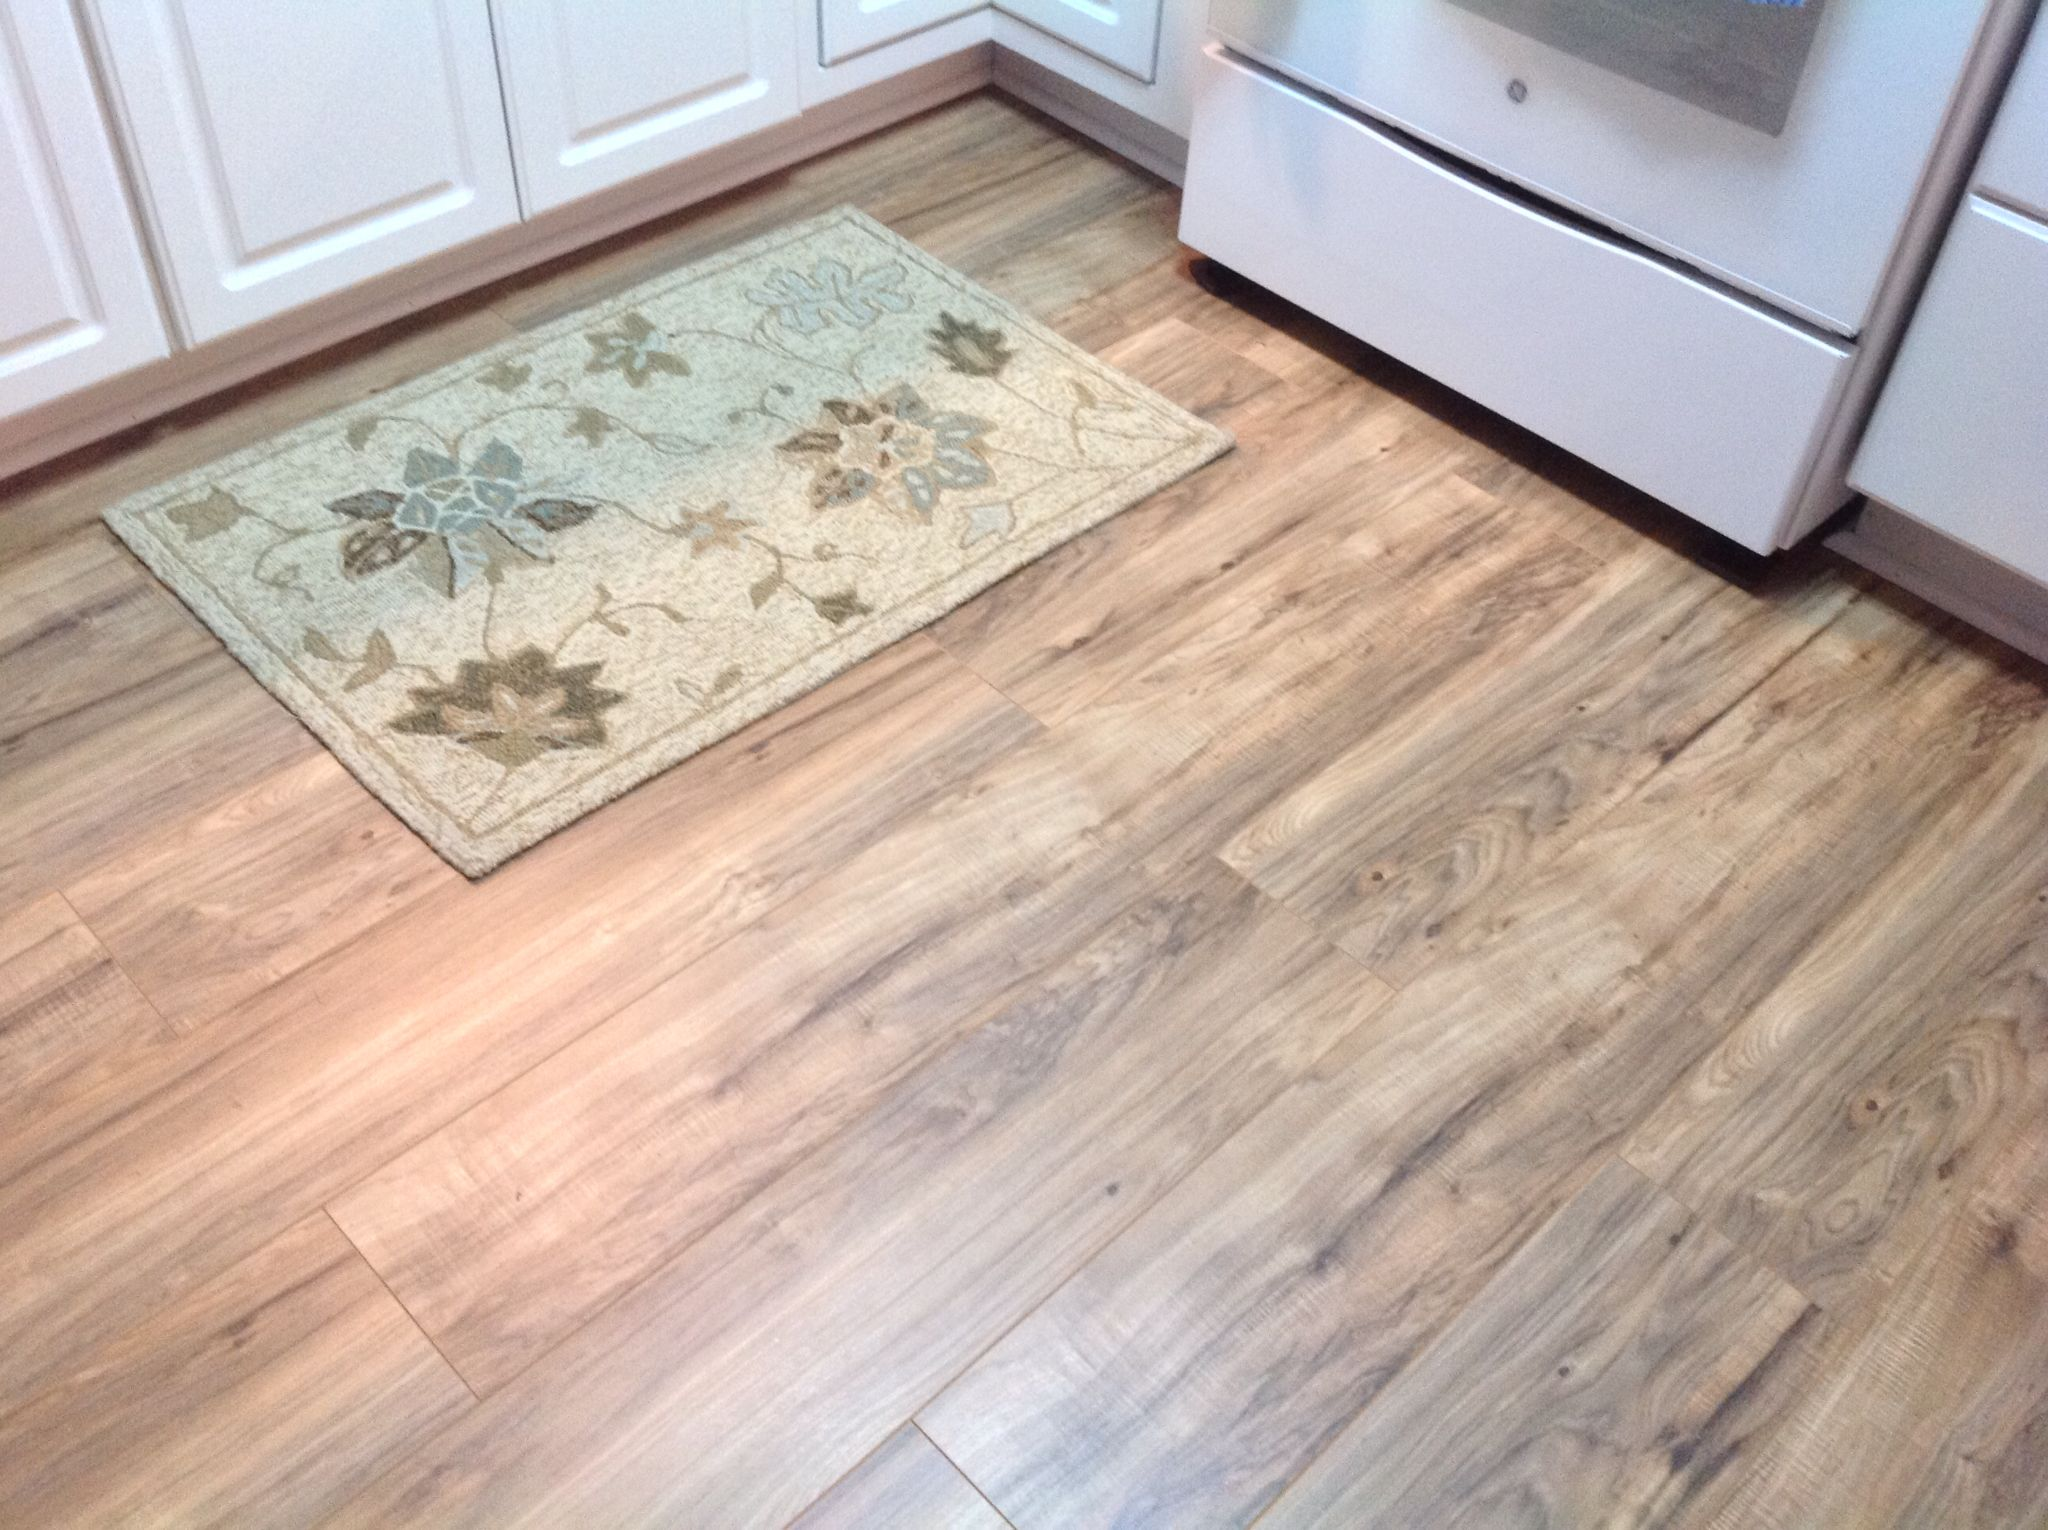 Trafficmaster Laminate Flooring trafficmaster lakeshore pecan 7 mm thick x 7 23 in wide x 50 58 in length laminate flooring 2417 sq ft case The Finished Kitchen Area Using Trafficmaster Lakeshore Pecan Laminate You Should Have 2